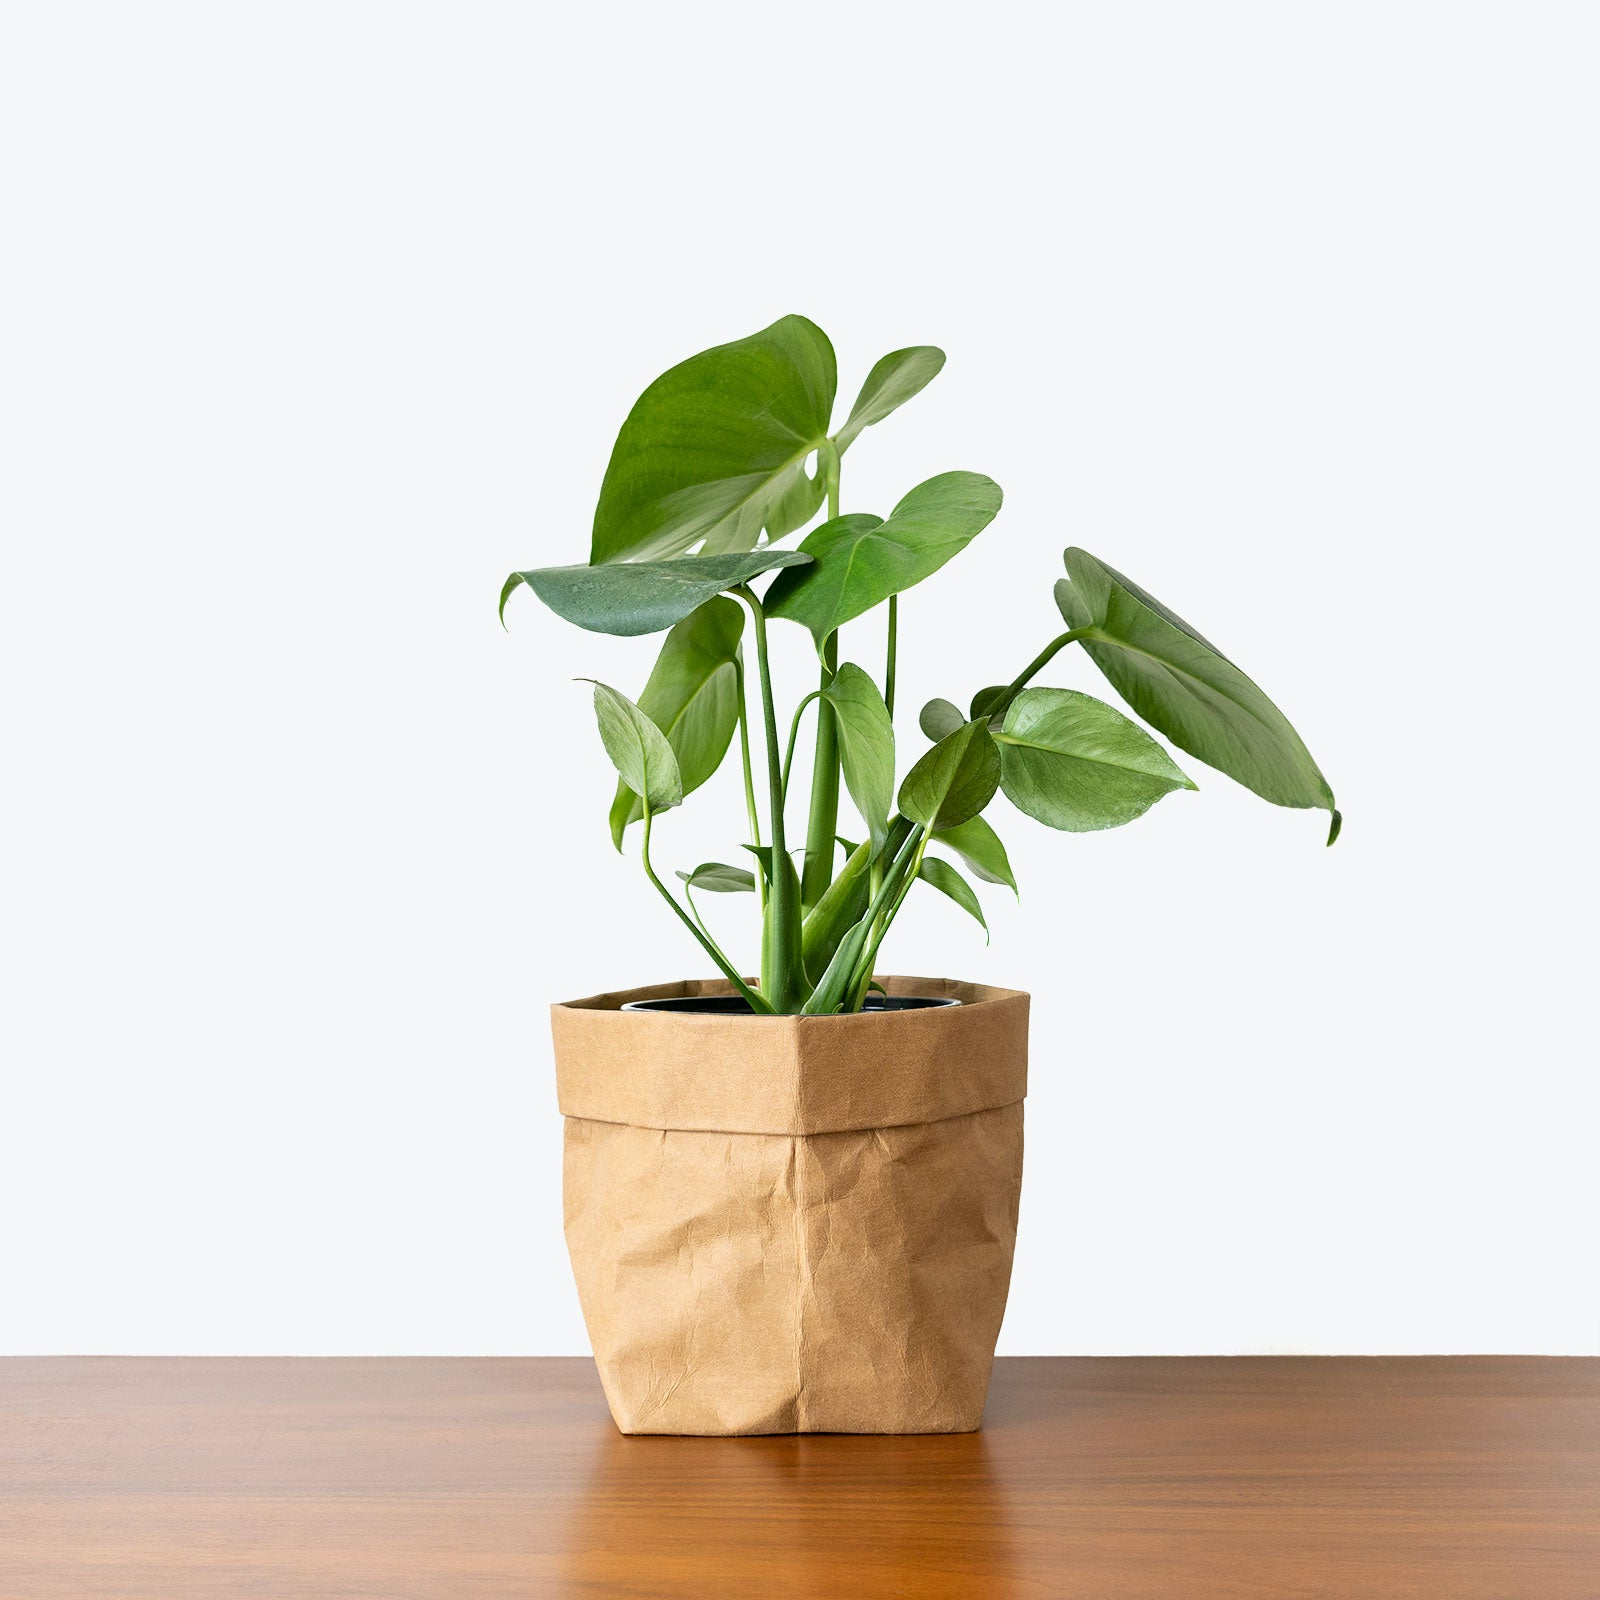 Example of Monstera variety Philodendron: Monstera Deliciosa